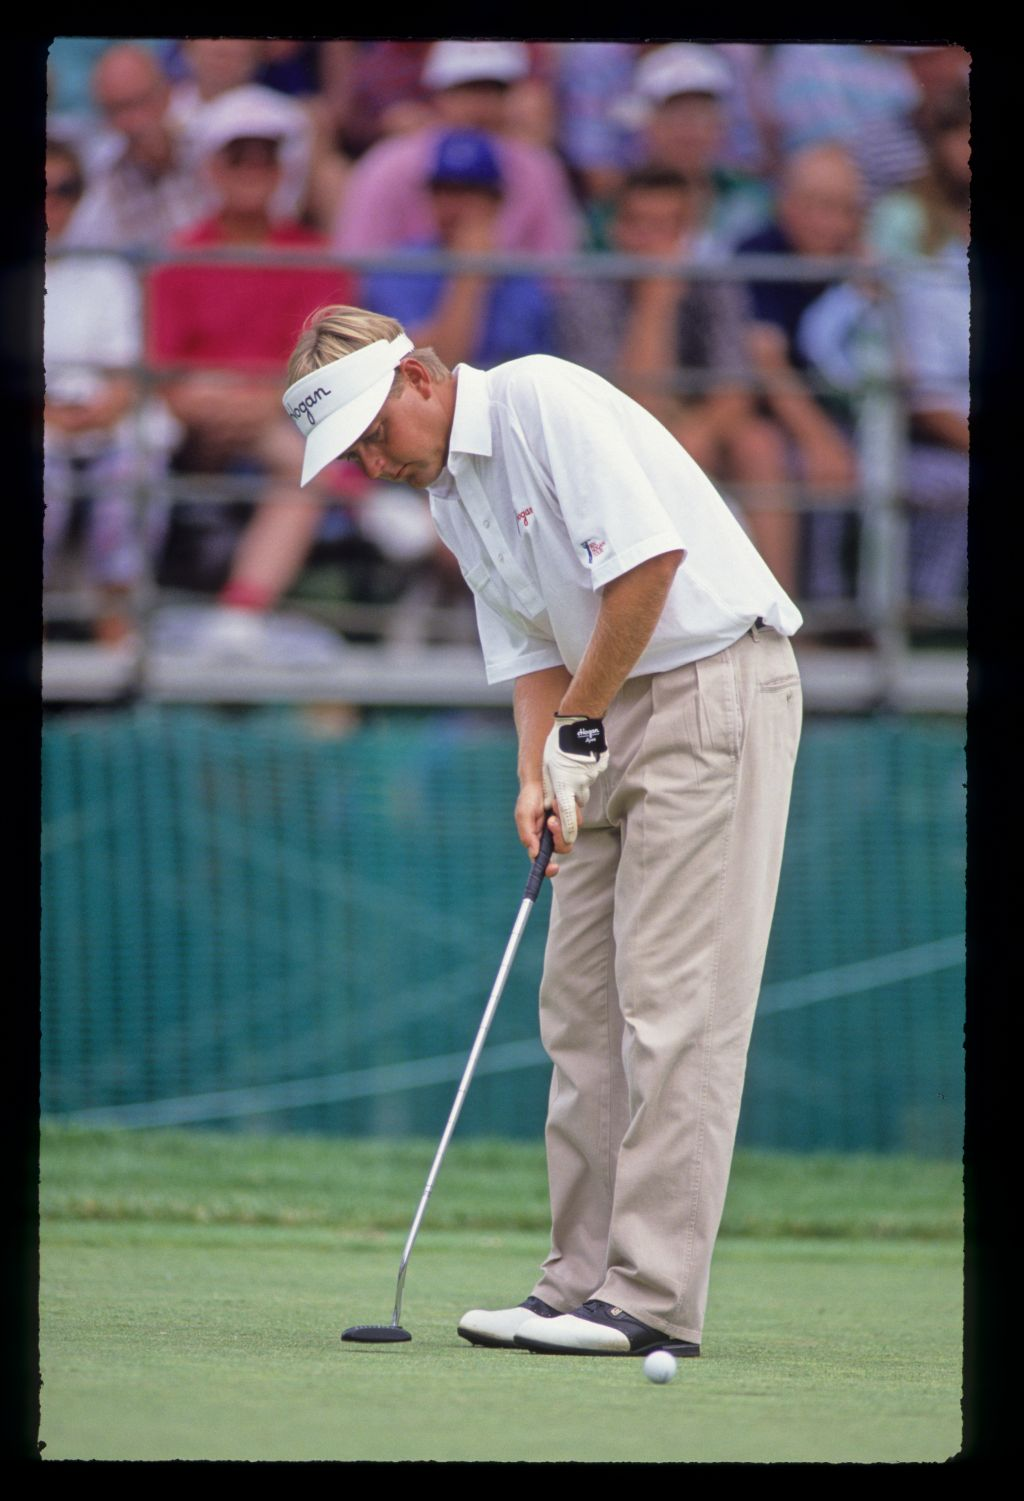 Jeff Sluman with a short putt during the 1990 US Open